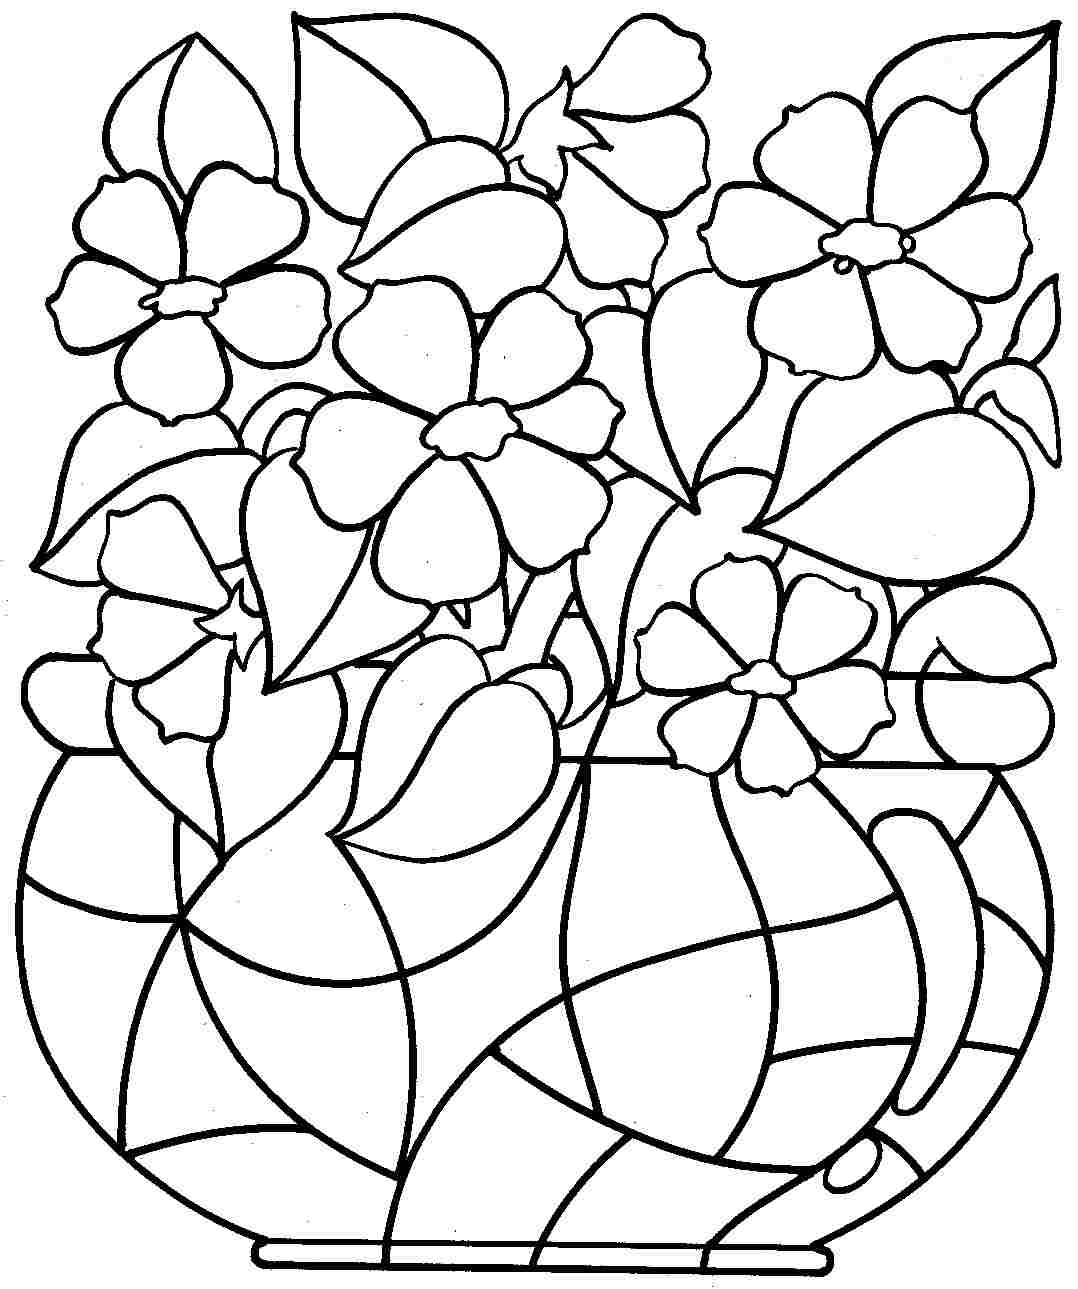 flower adult coloring pages - flower coloring pages free 2017 flower coloring pages free with big flower coloring pages coloring pages of animals